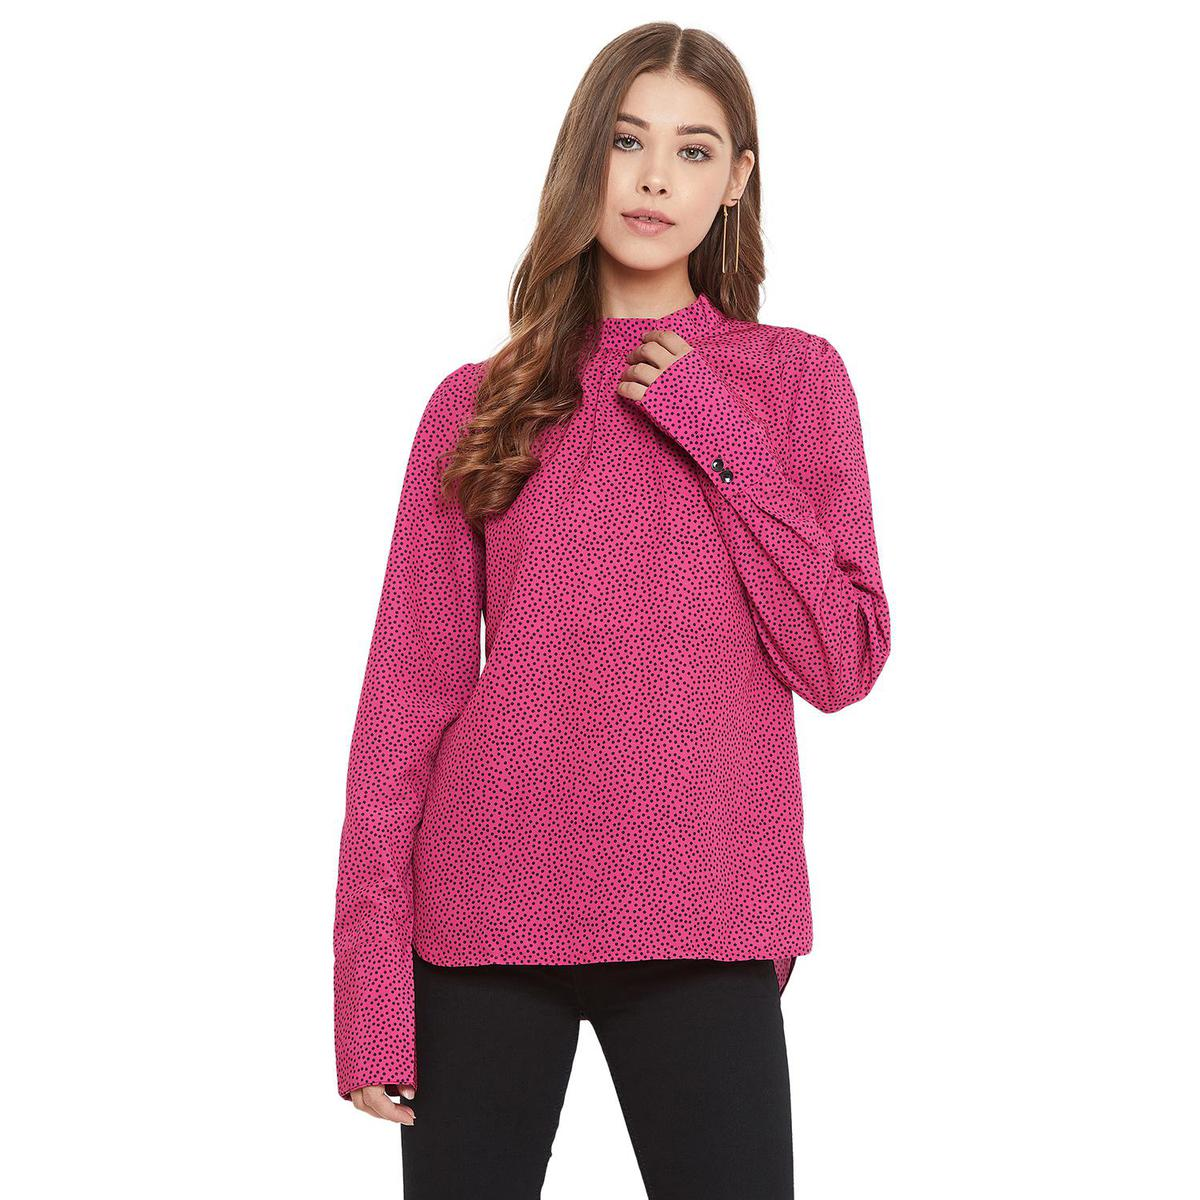 Weave & Knits - Pink Colored Casual Wear Polka Dot Printed Polyester Top